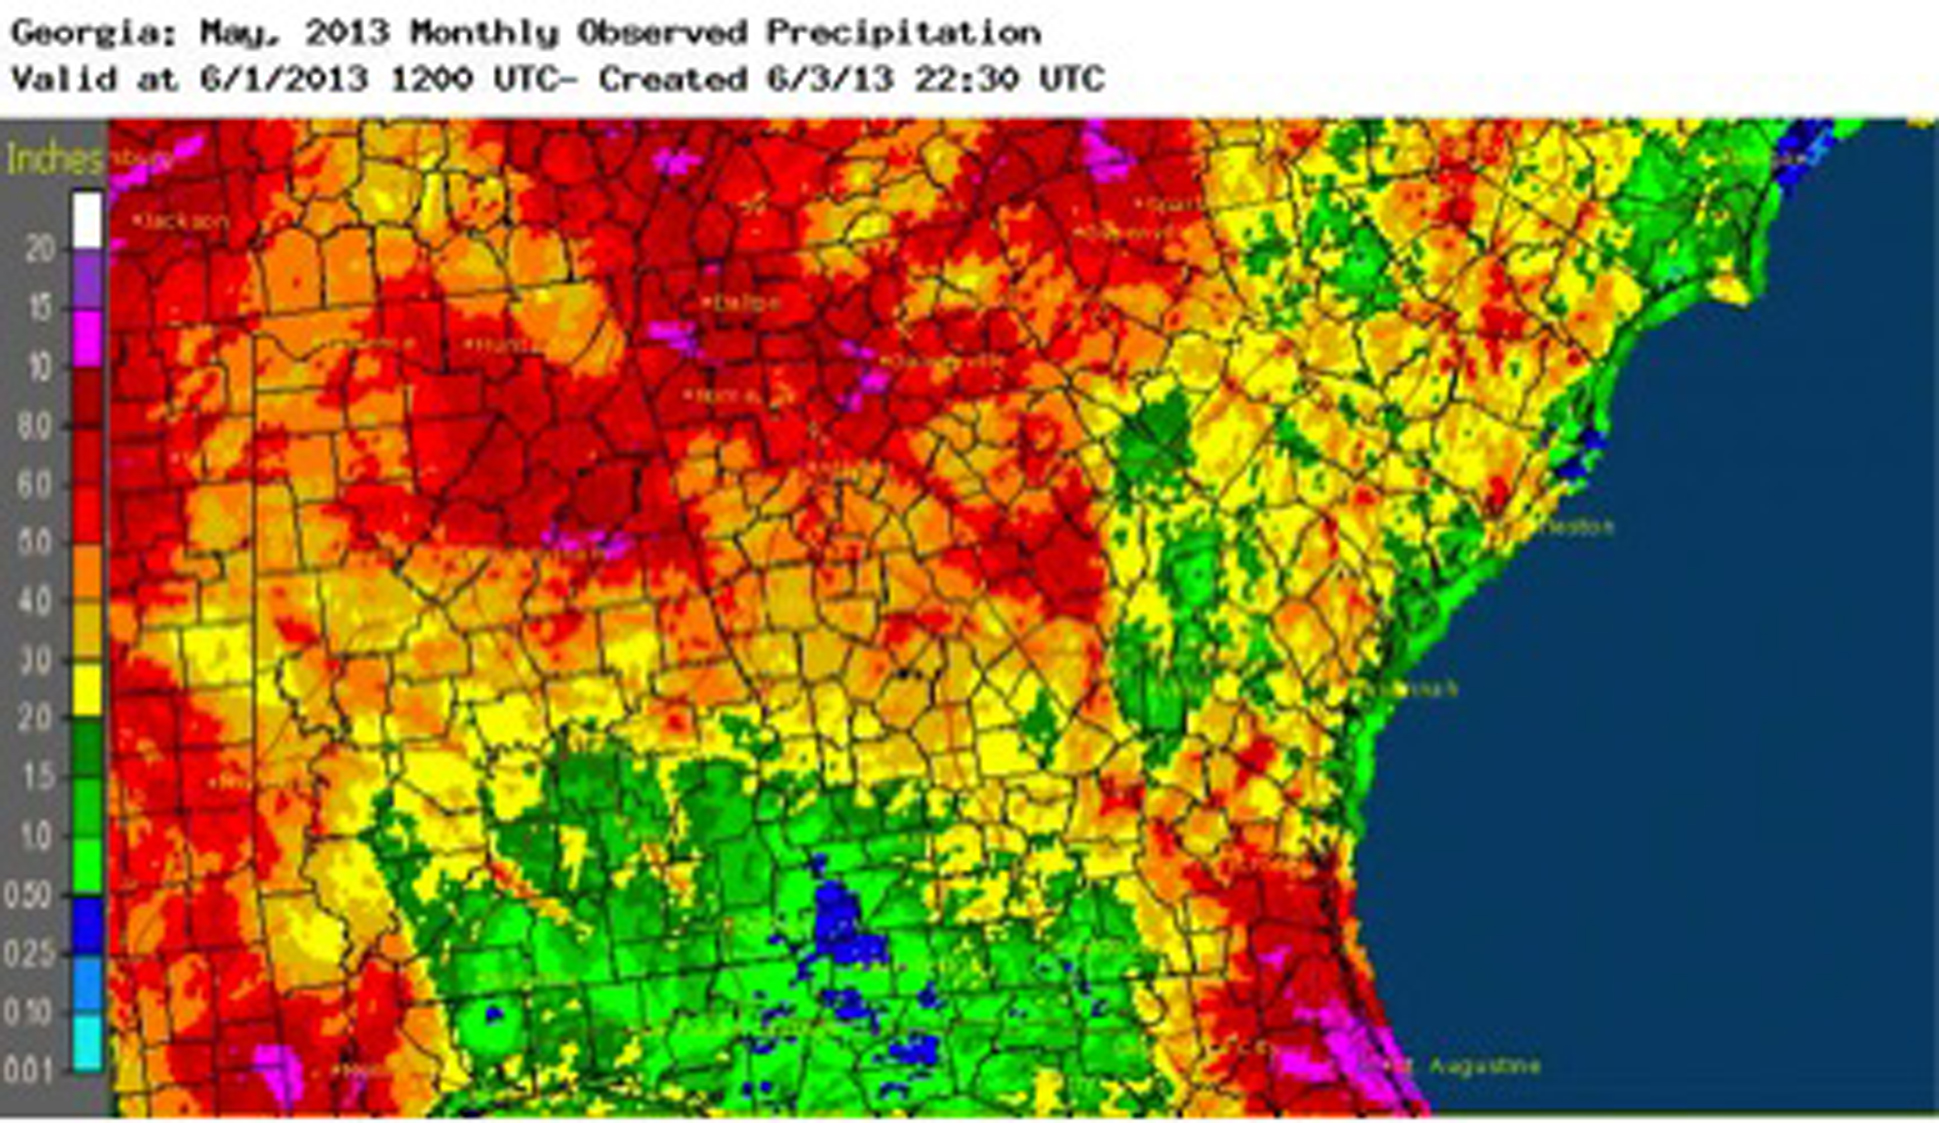 Some areas of Georgia received significantly more rain than normal during May 2013, but left others too dry.